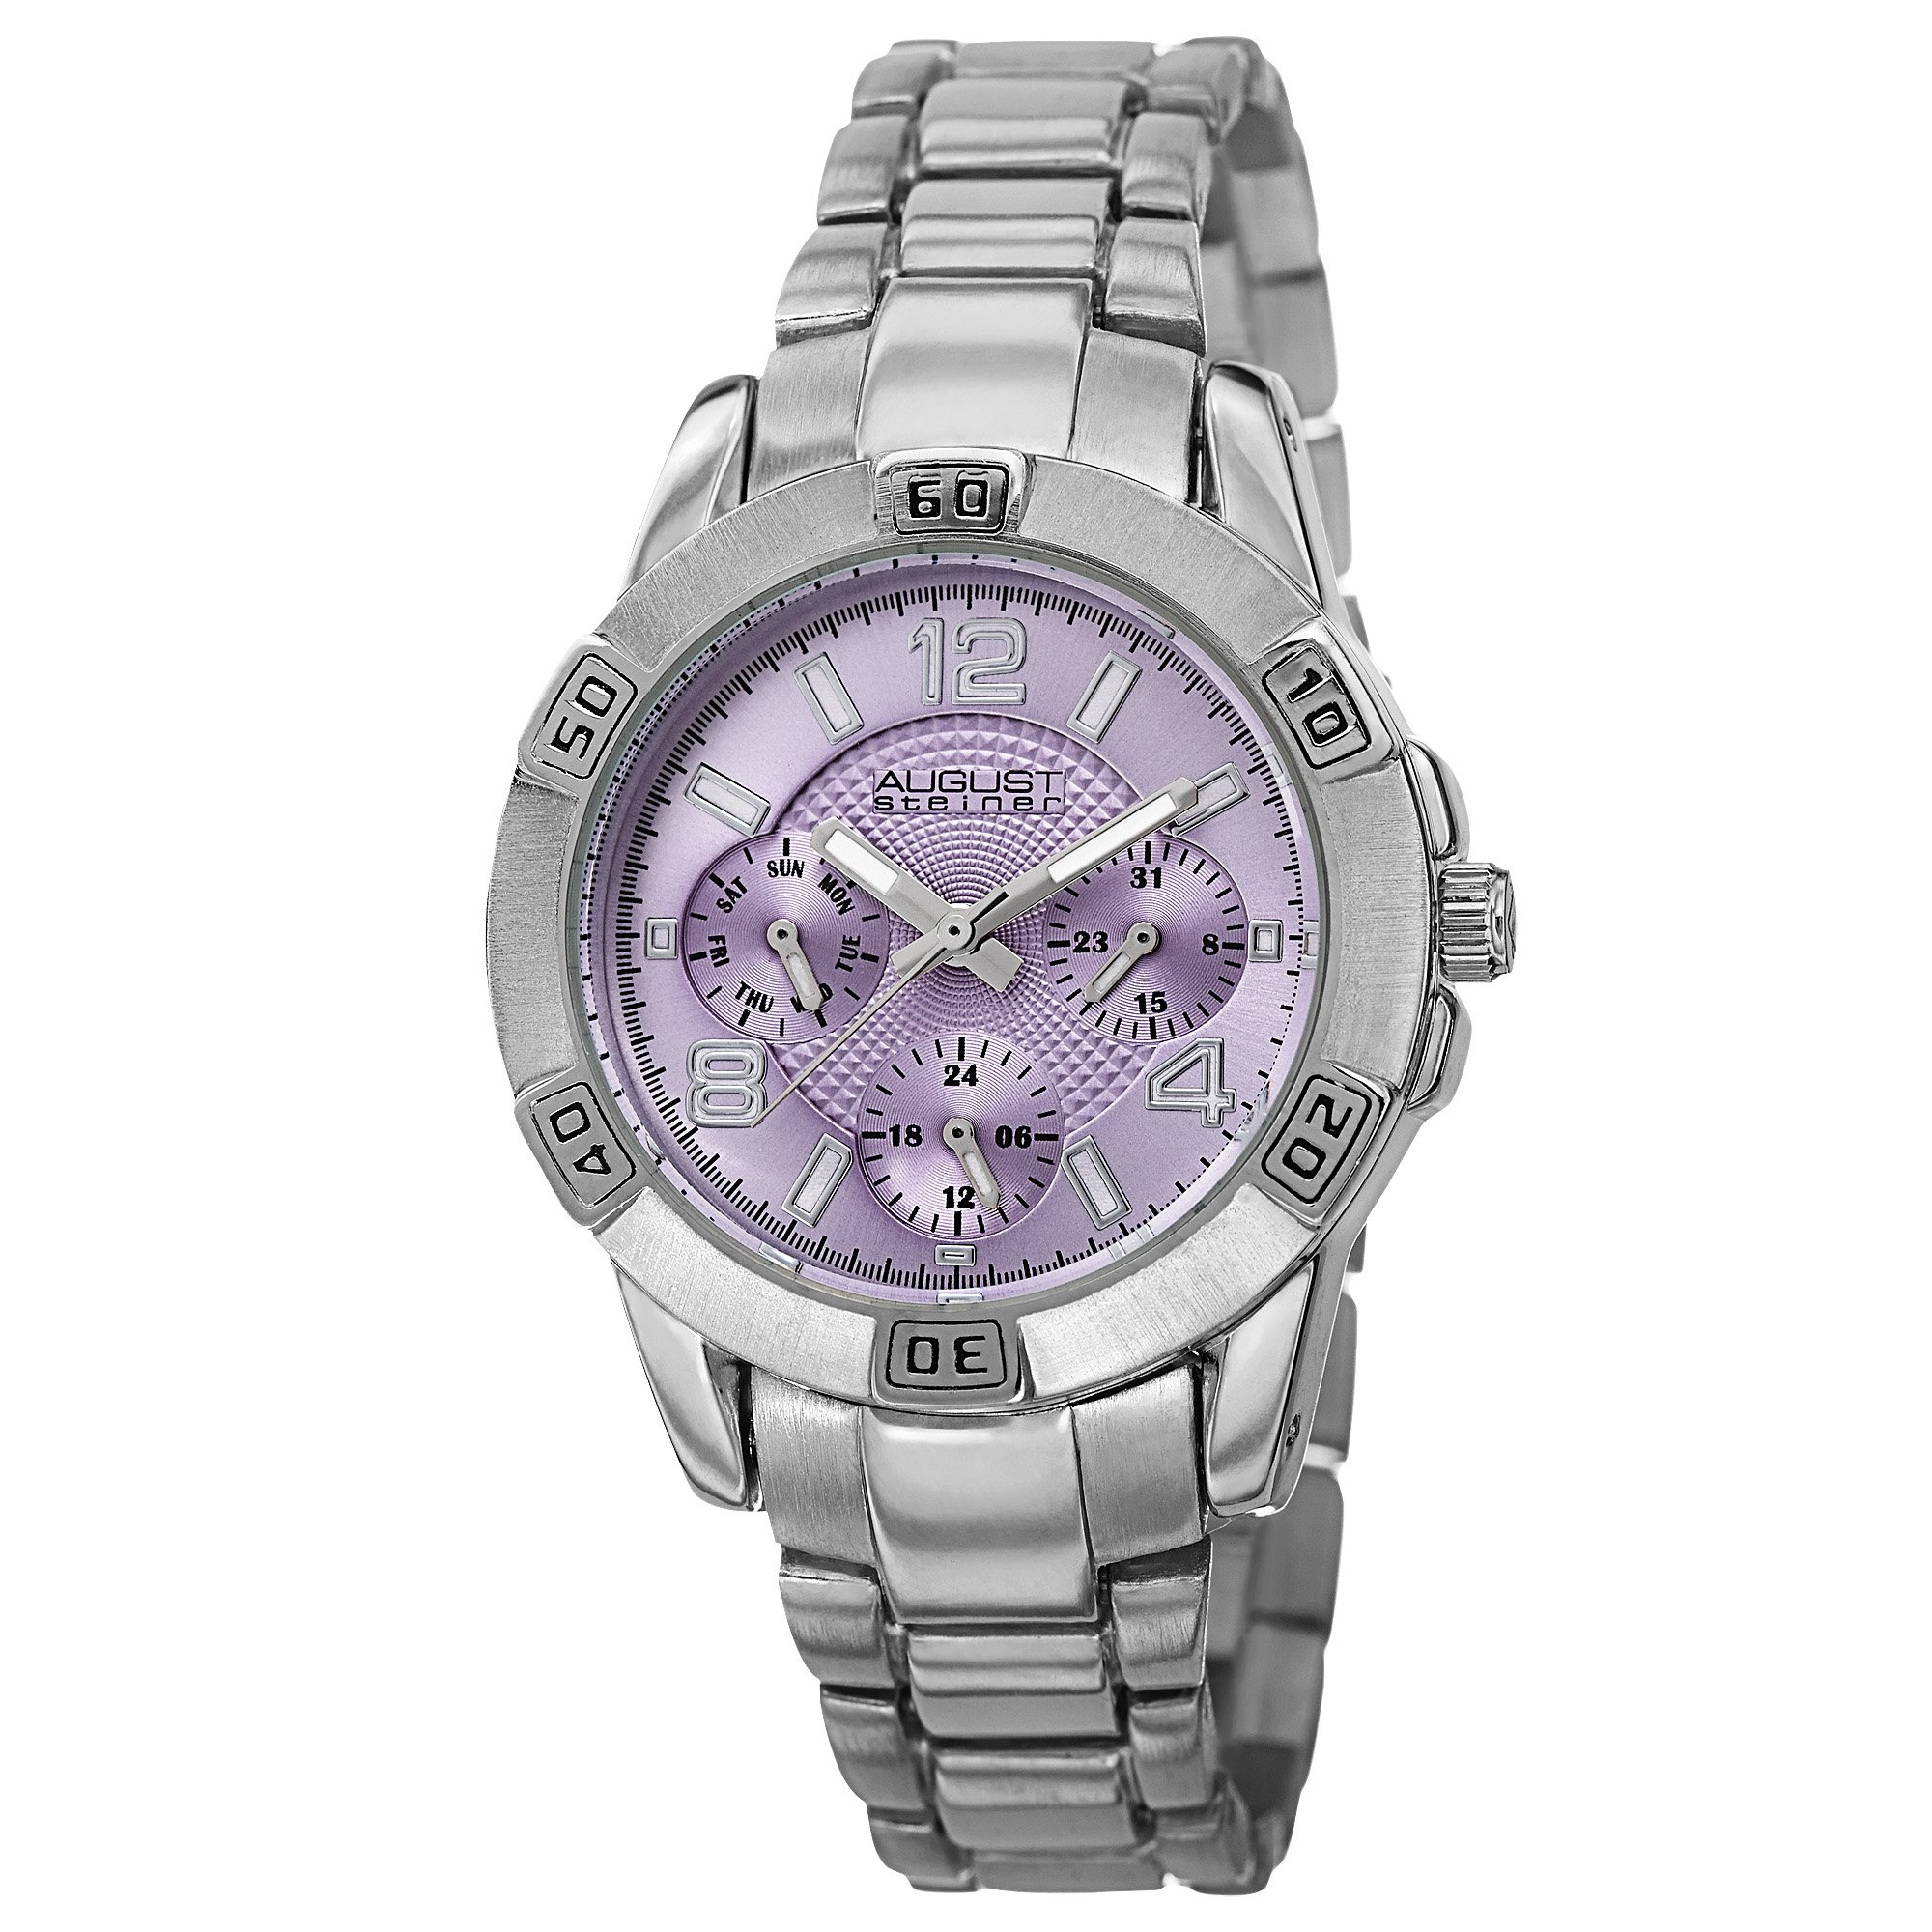 August Steiner Women's AS8143SSPU Silver Quartz Watch with Periwinkle Dial and Silver Bracelet by August Steiner